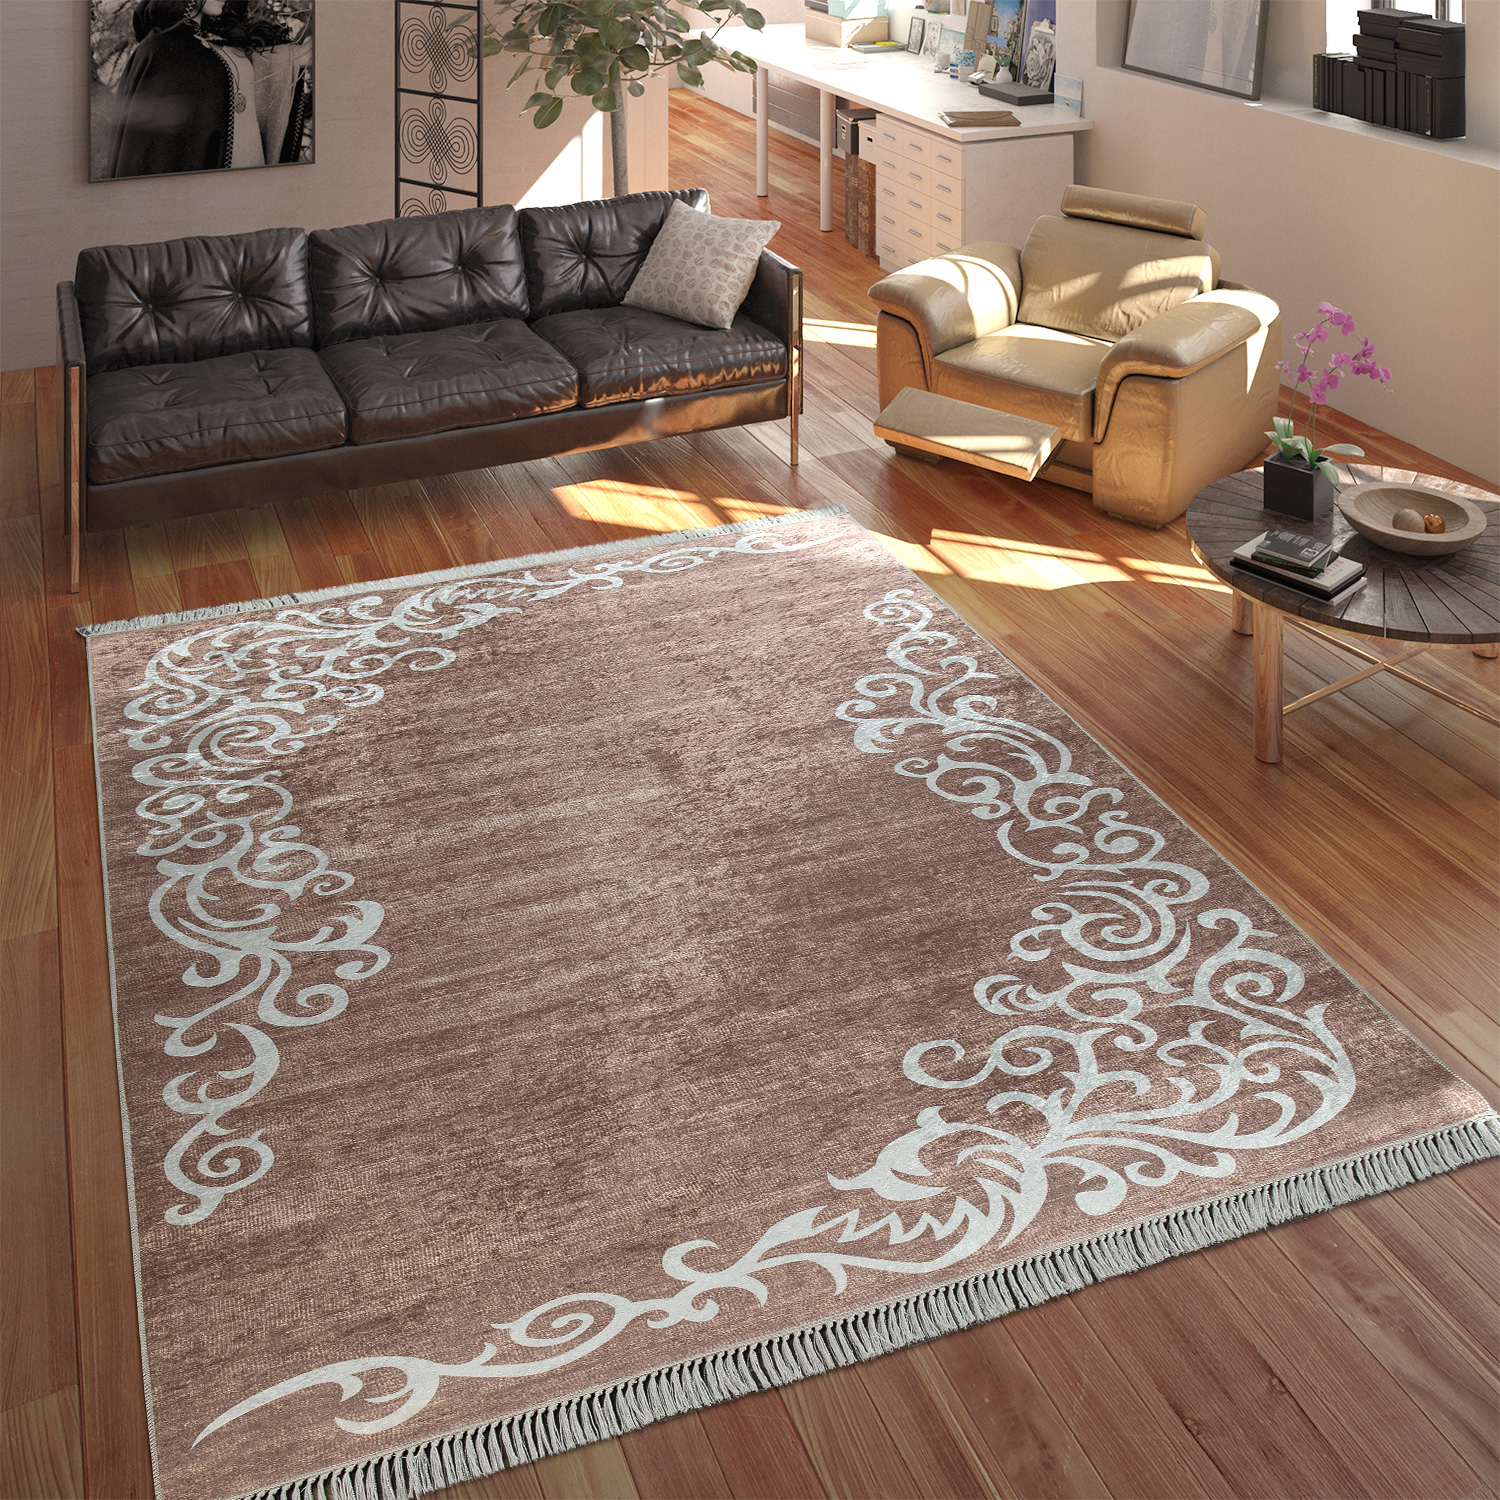 Modern Rug With Printed Tendril Pattern Trendy Design Beige White